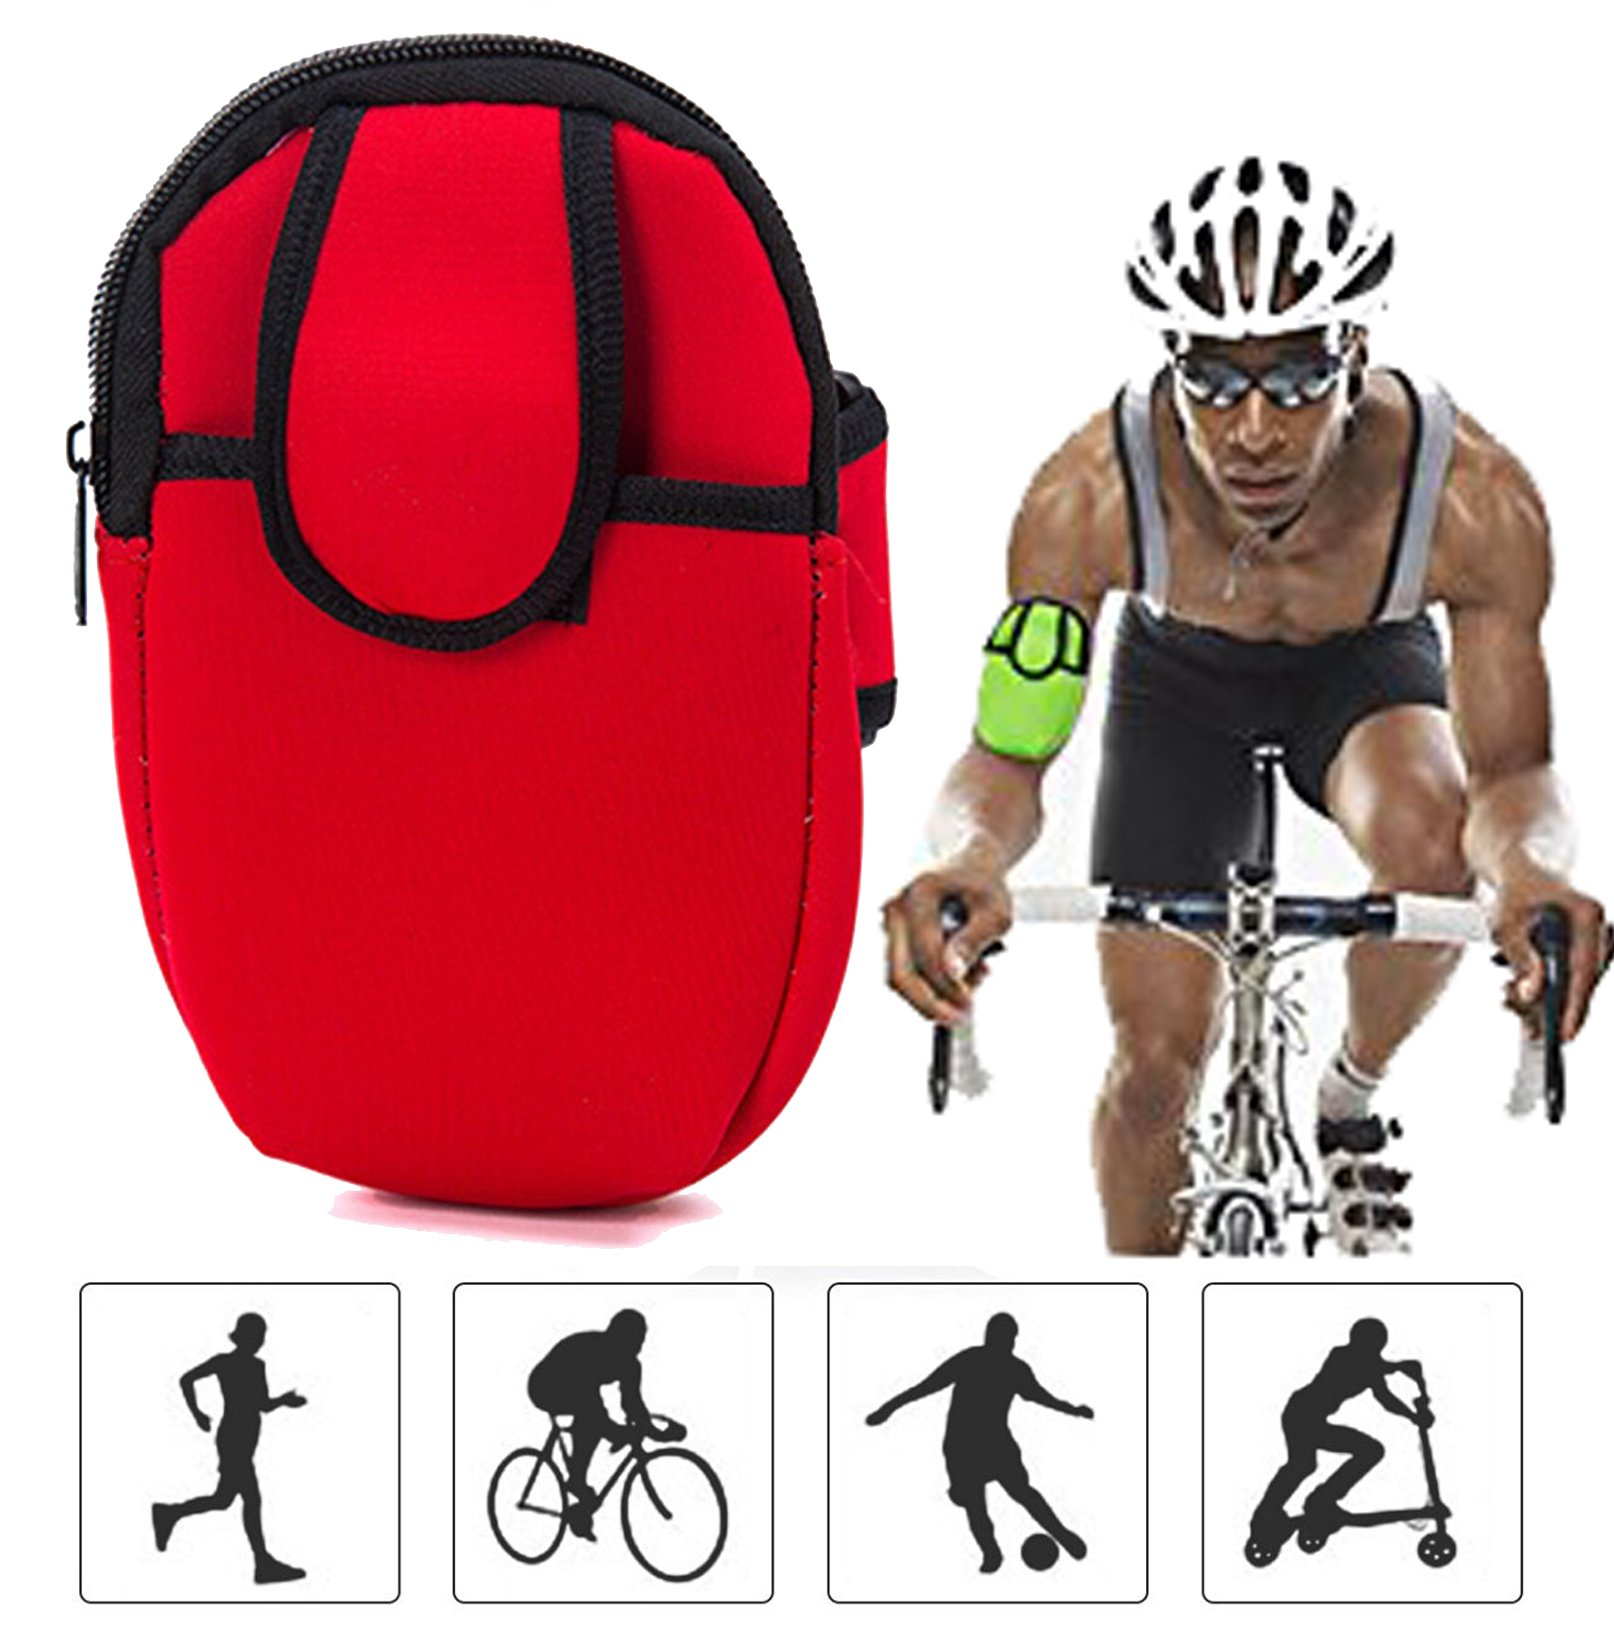 Yonger Outdoors Sports Portable Multifunctional Neoprene Arm Bag Pouch Wrist Wear Gym Running Cycling Smartphone Arm Sleeve Pocket Armband Travel Storage Bag Box (Red) by Yonger